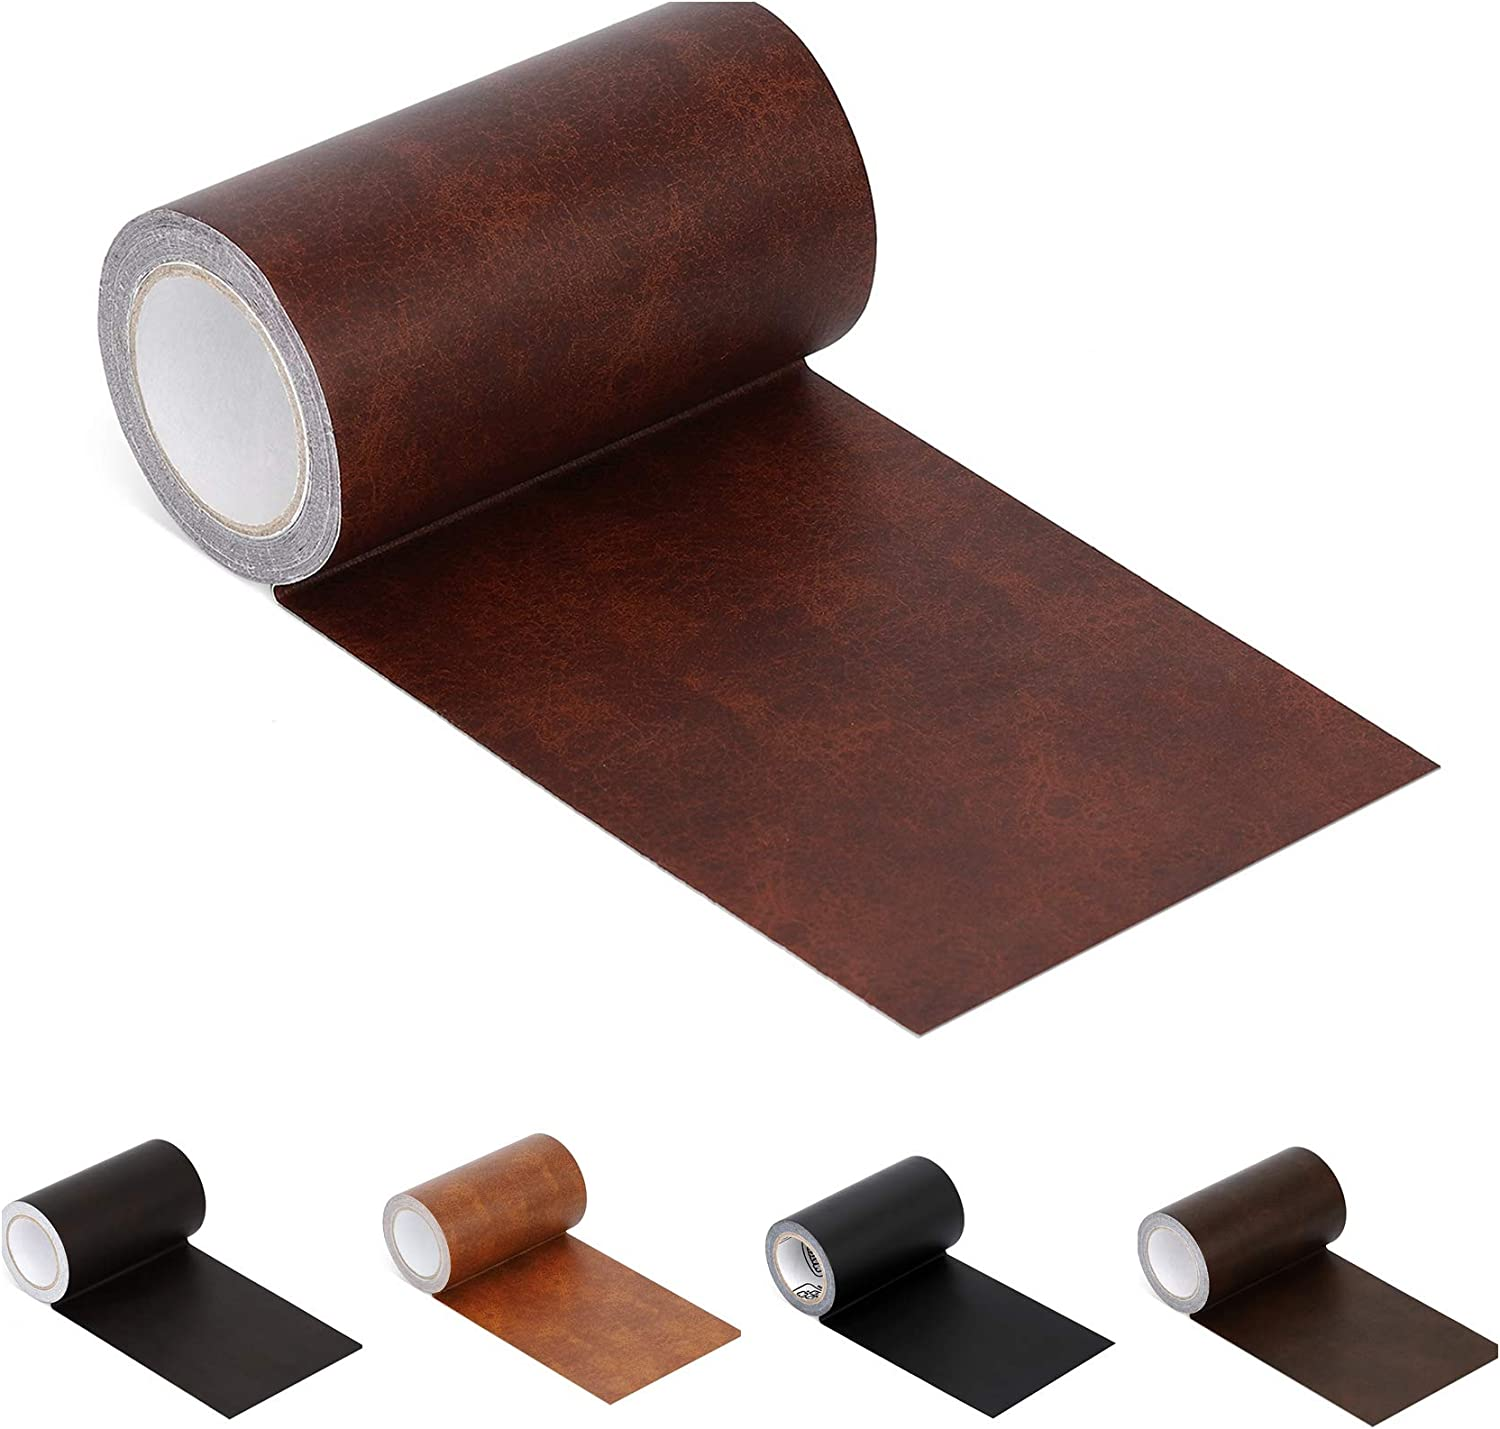 """Leather Repair Tape Patch Leather Adhesive for Sofas, Car Seats, Handbags, Jackets,First Aid Patch 2.4""""X15' (red Brown Leather)"""